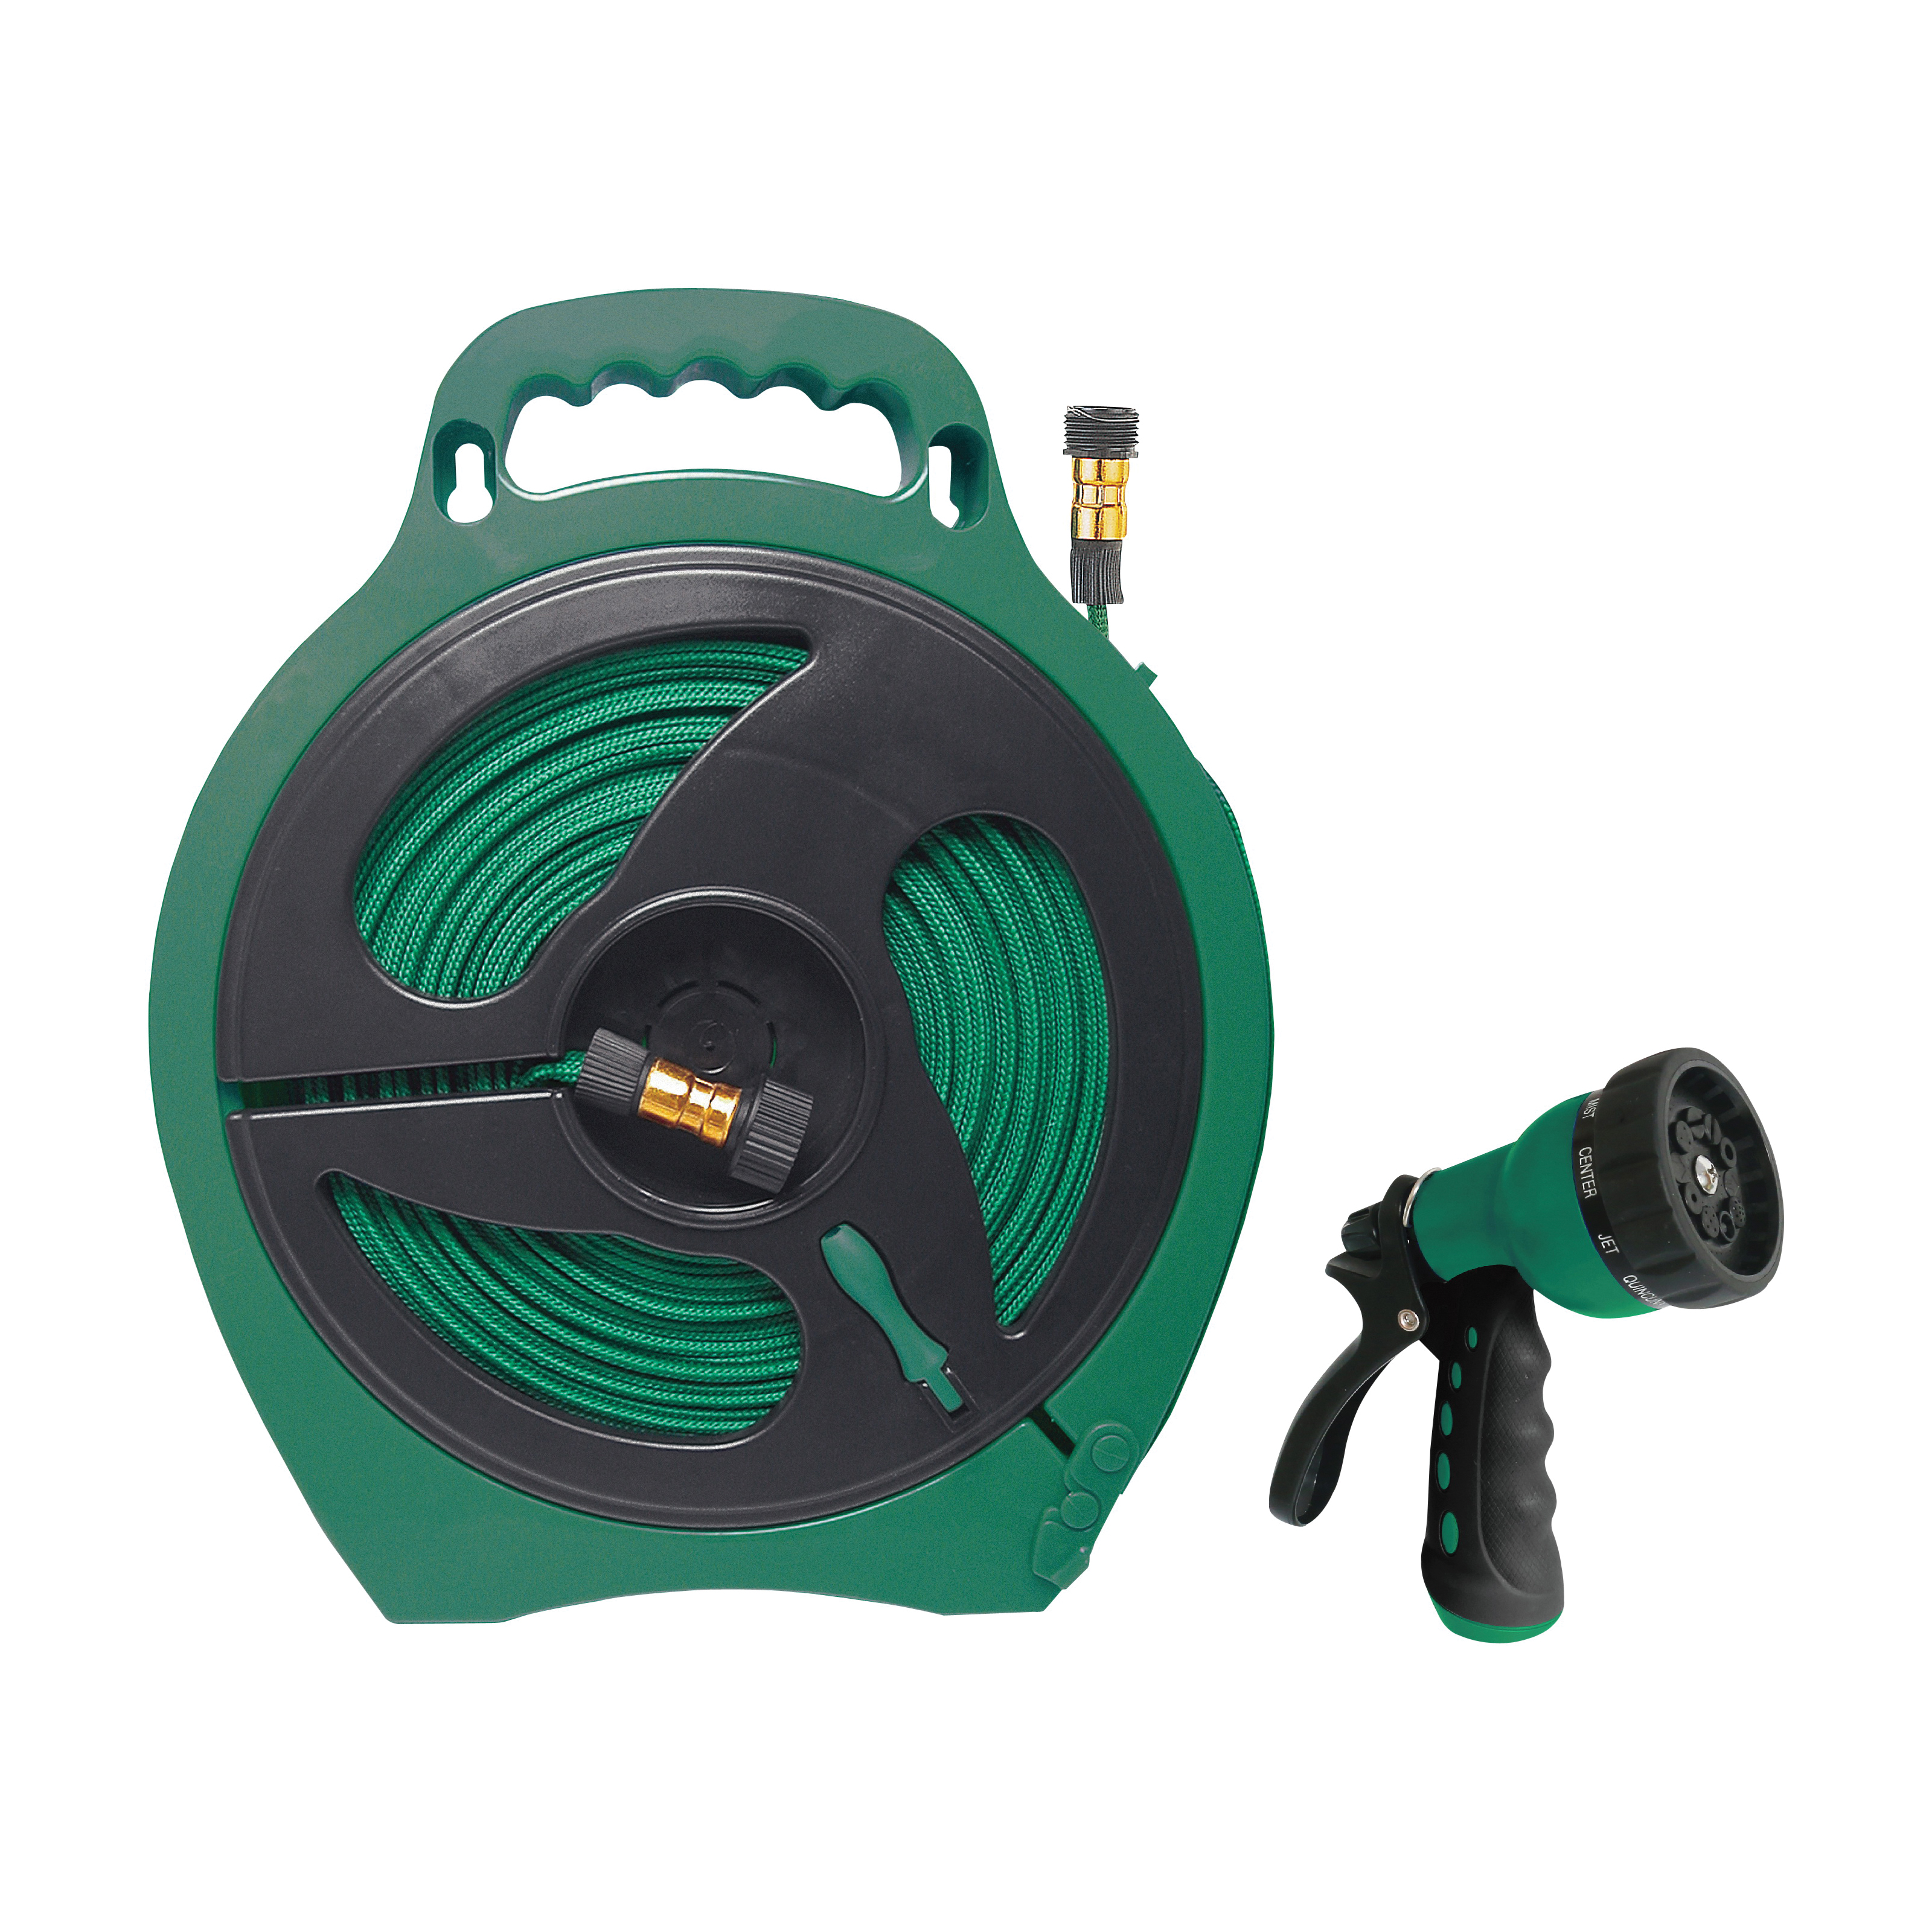 Picture of Landscapers Select YP1121 Hose Set, 50 ft L Hose, 50 ft Hose, In a Storage Case Winding, Built-In Handle, Polyester